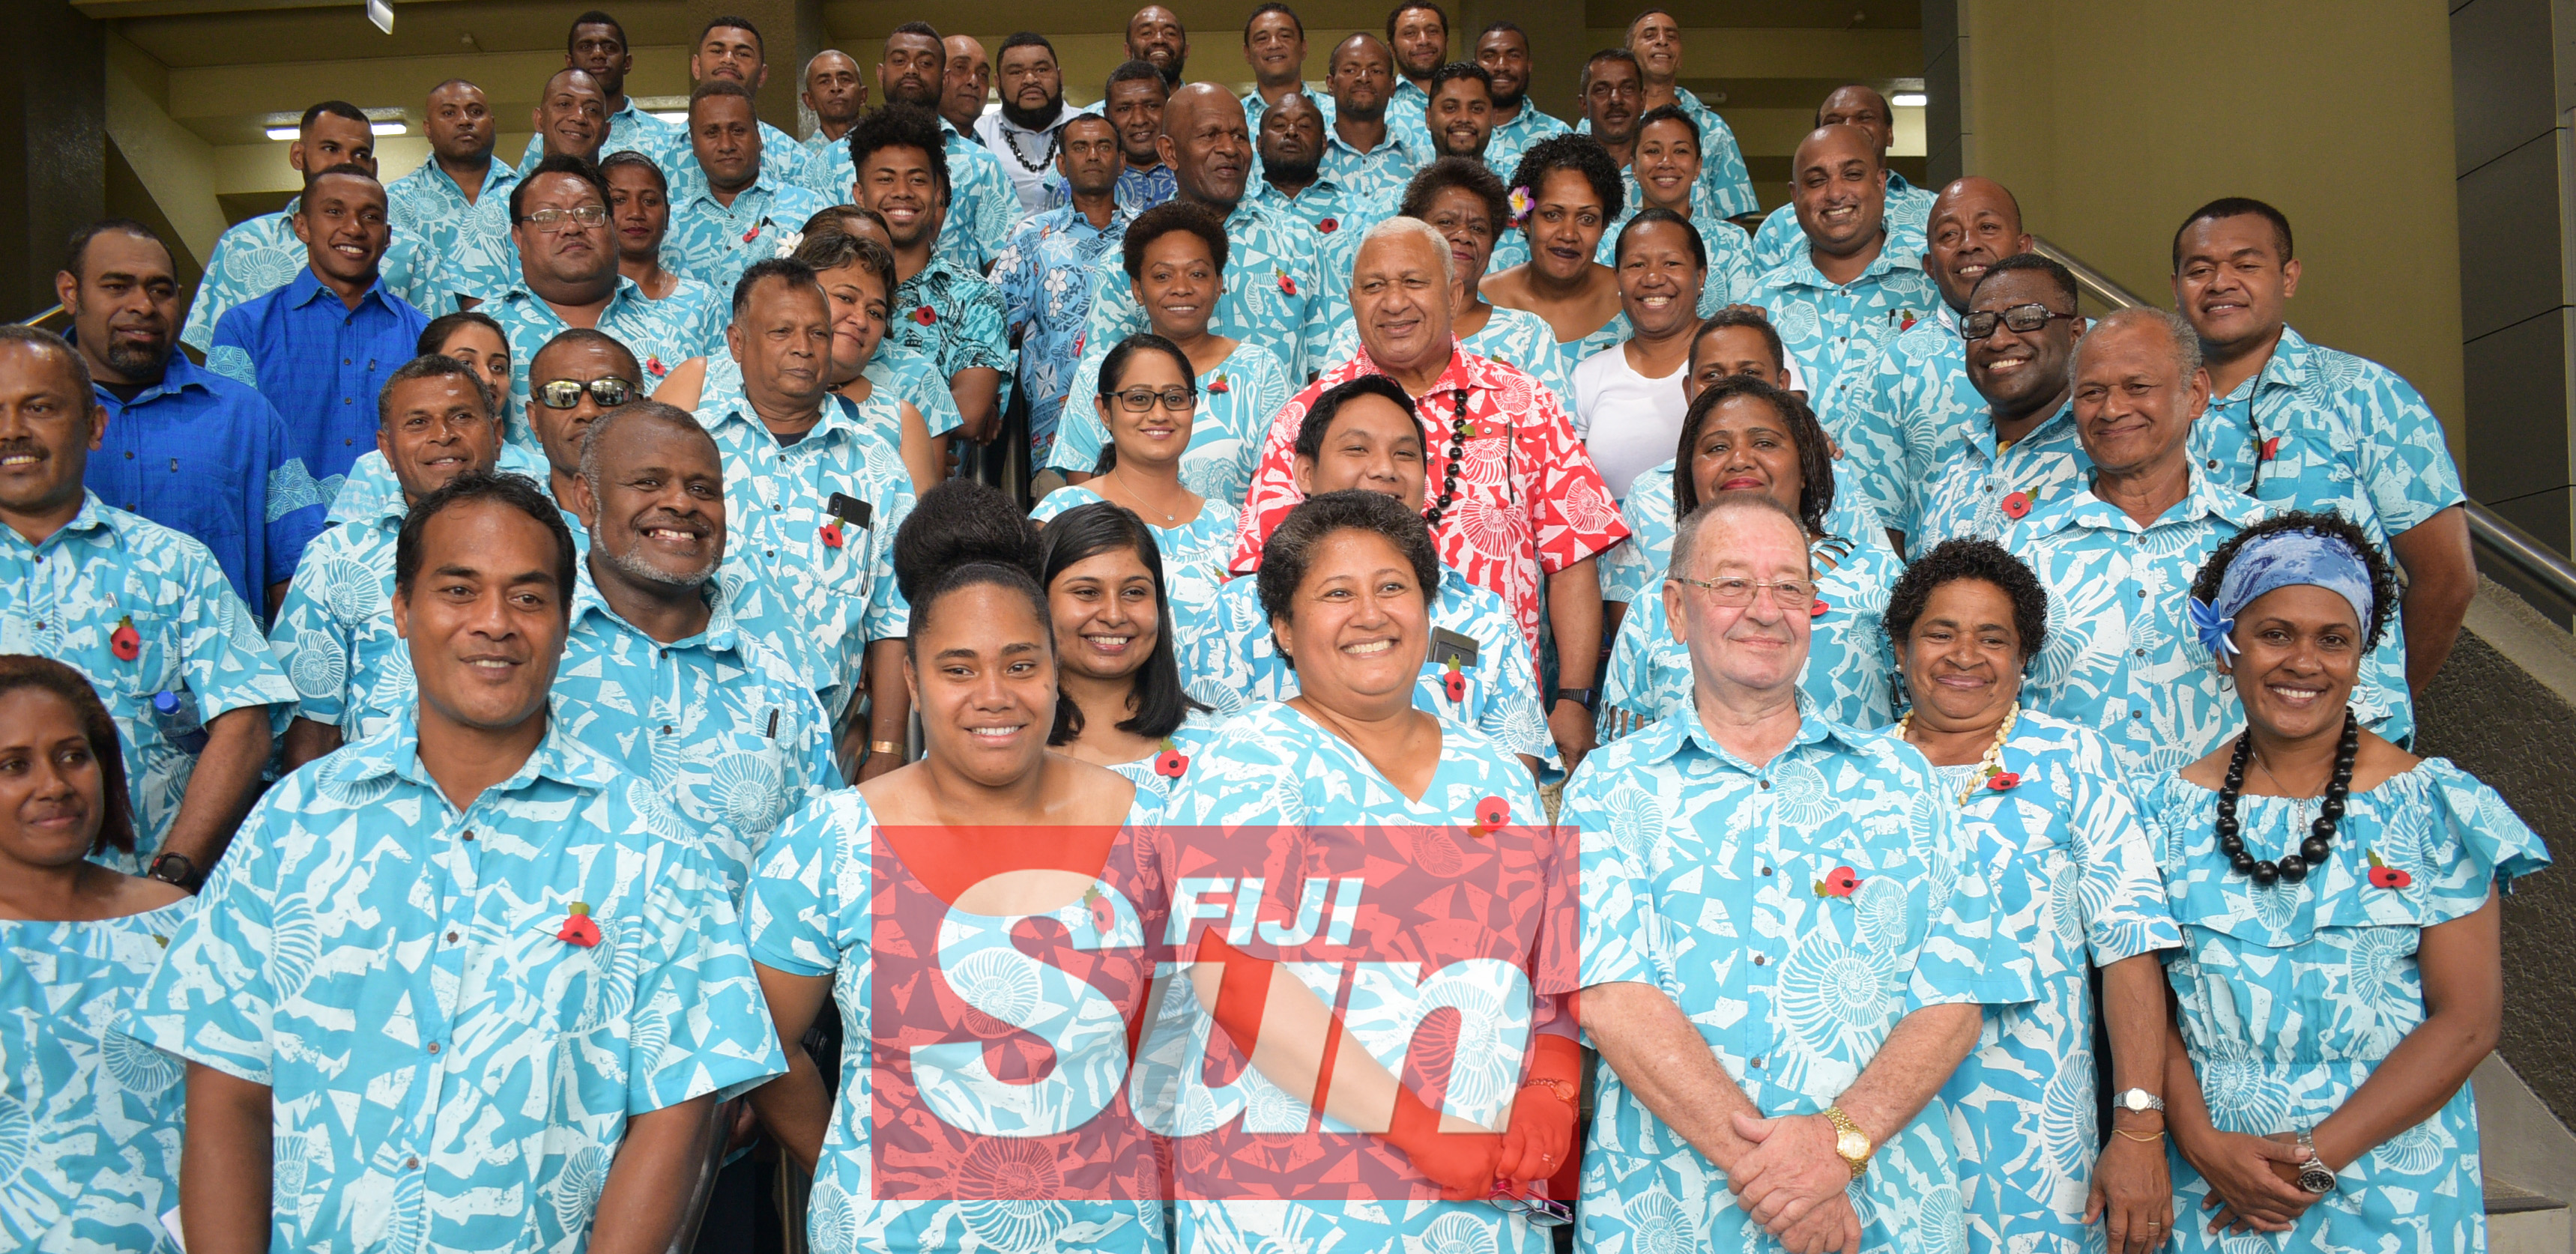 Prime Minister Voreqe Bainimarama with Fiji Sports Council Chief Executive Officer, Litiana Loabuka, Board Chairman Peter Mazey and staff during the the opening of the renovated Vodafone Arena on November 8, 2019. Photo: Ronald Kumar.